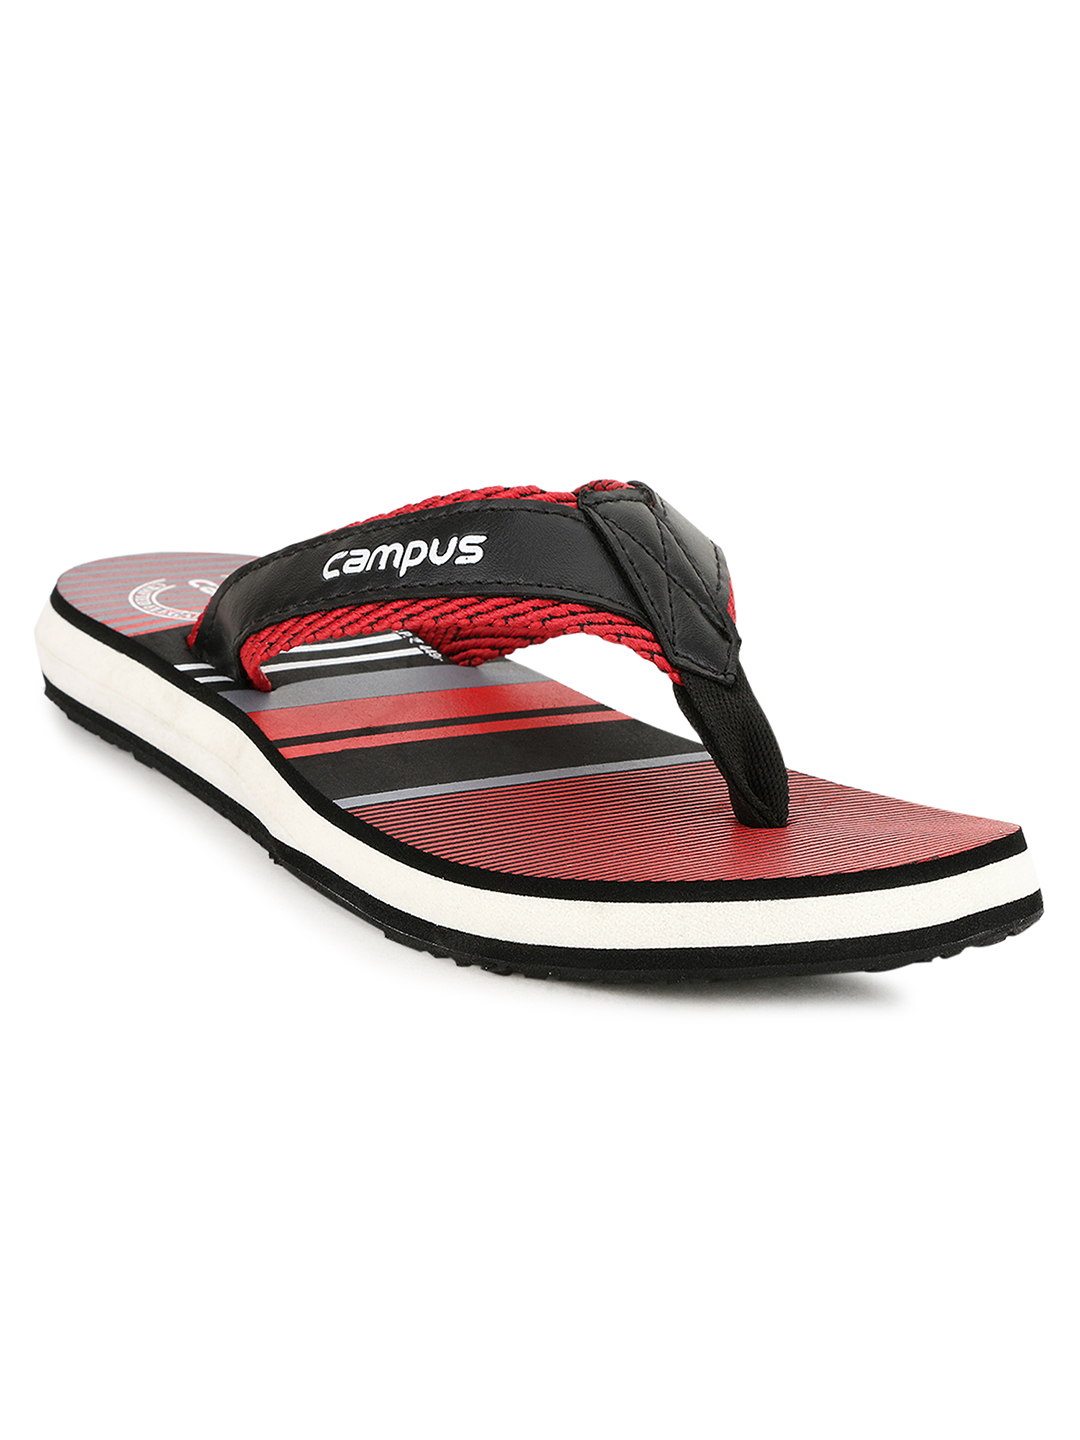 Campus Shoes   Red Slippers